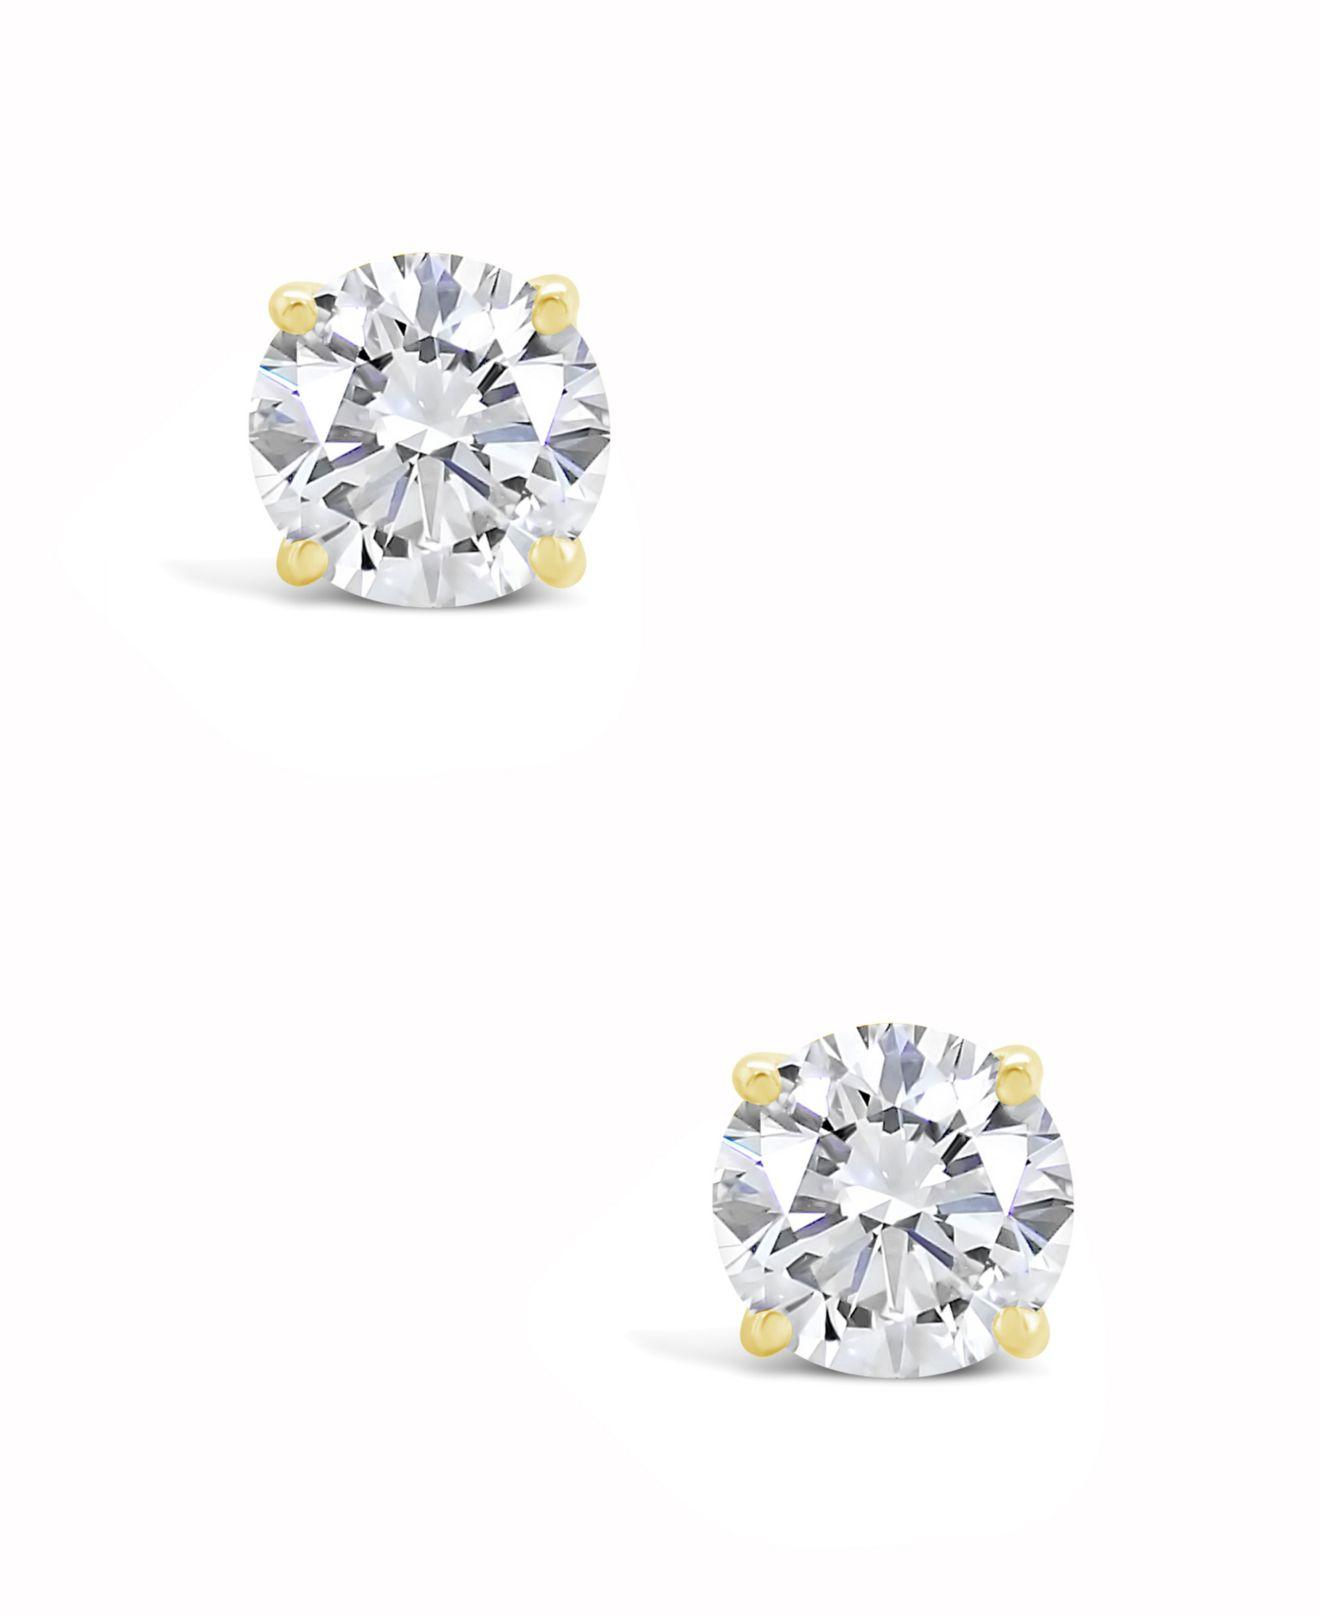 08dc57238da Lyst - Macy s Certified Round Diamond Stud Earrings (2 Ct. T.w.) In 14k  White Gold Or Yellow Gold in Yellow - Save 66%